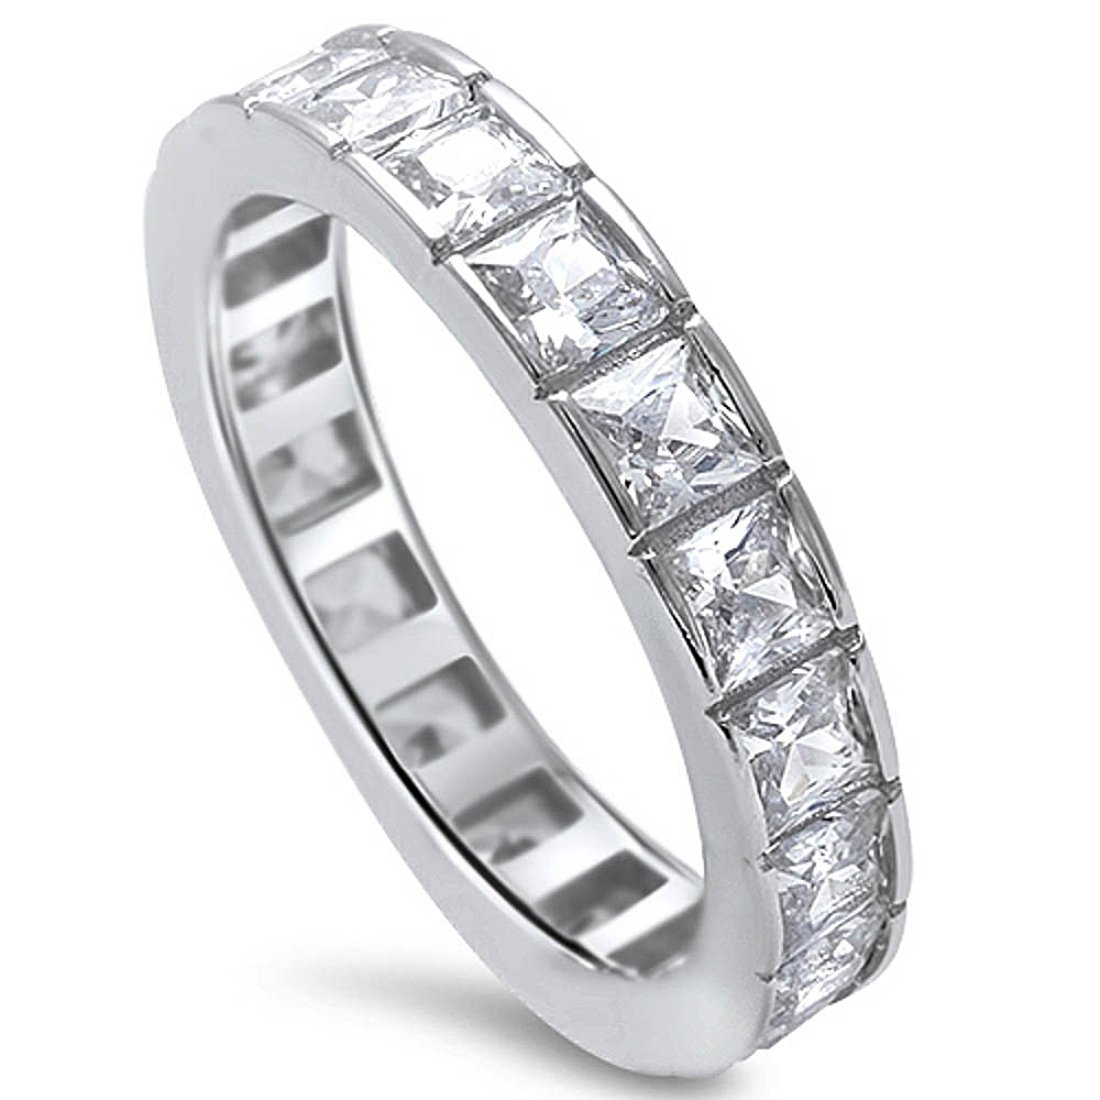 4mm Full Eternity Stackable Band Ring Princess Cut Square Invisible Cubic Zirconia 925 Sterling Silver